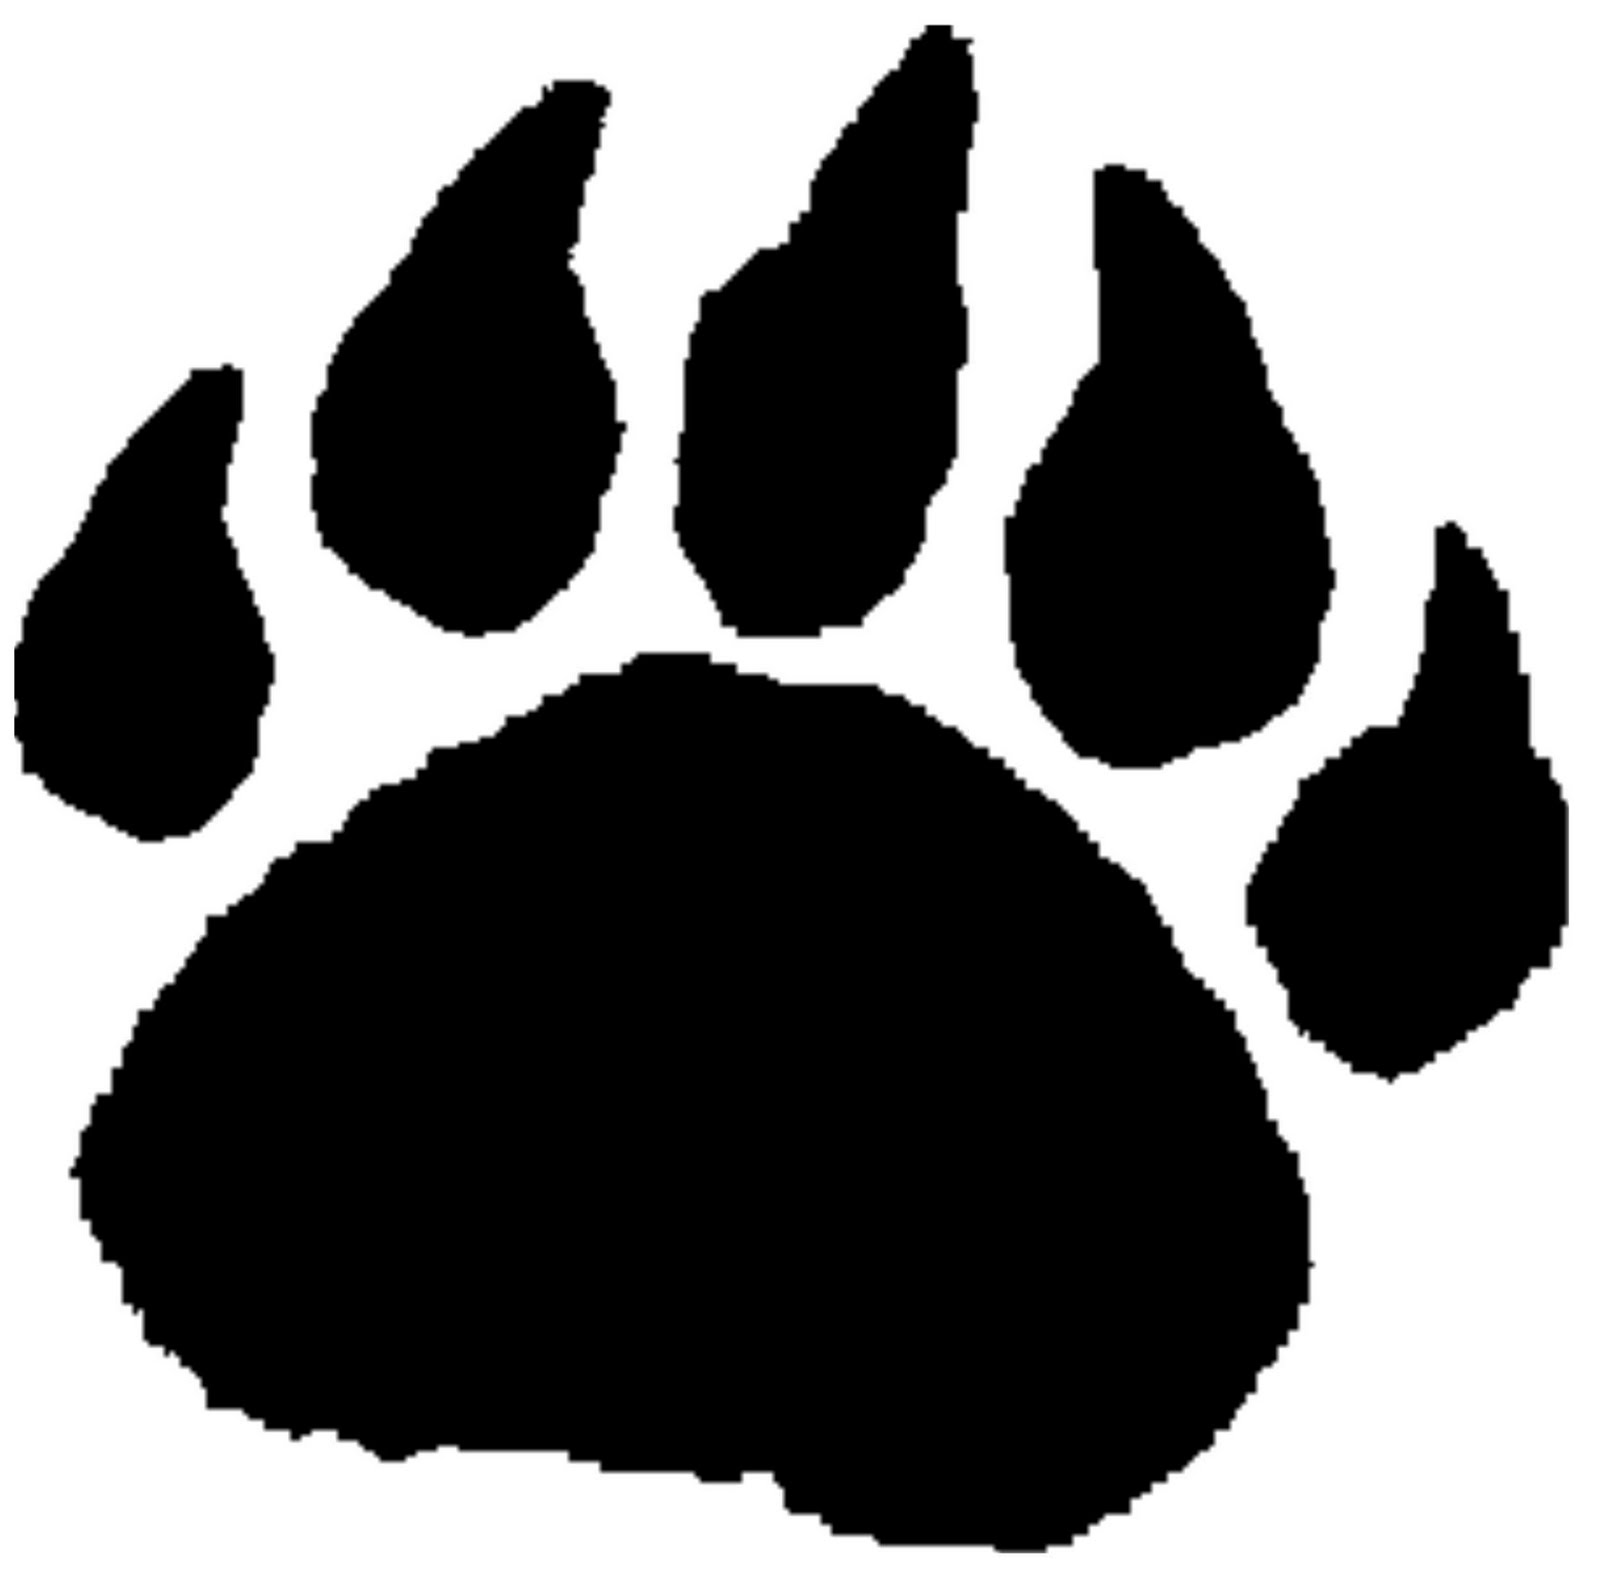 Grizzly Bear Paw Print Clipart-grizzly bear paw print clipart-16